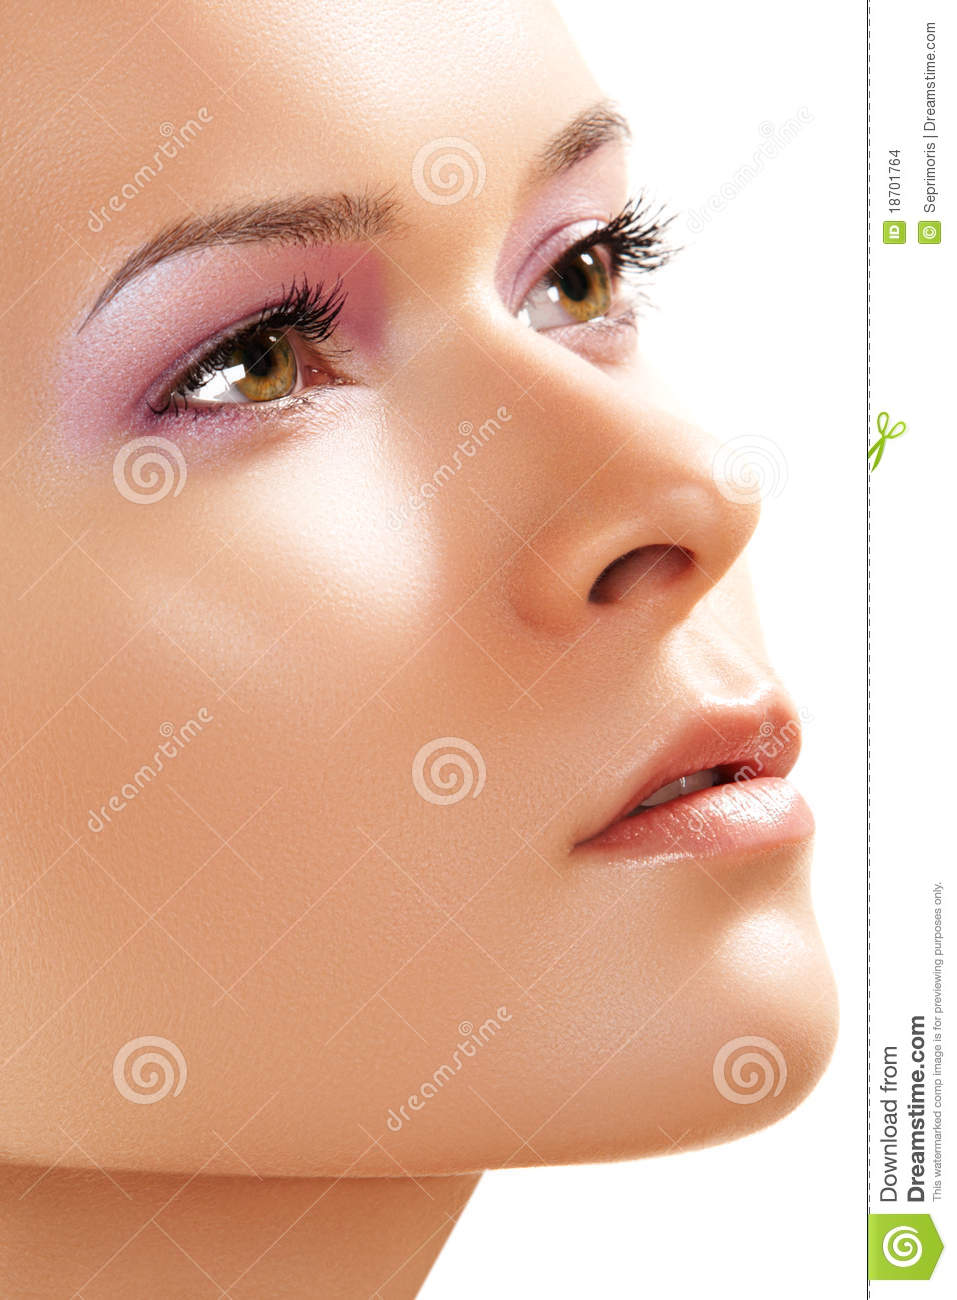 Spa wellness skin care close up of beauty face stock for A skin care salon